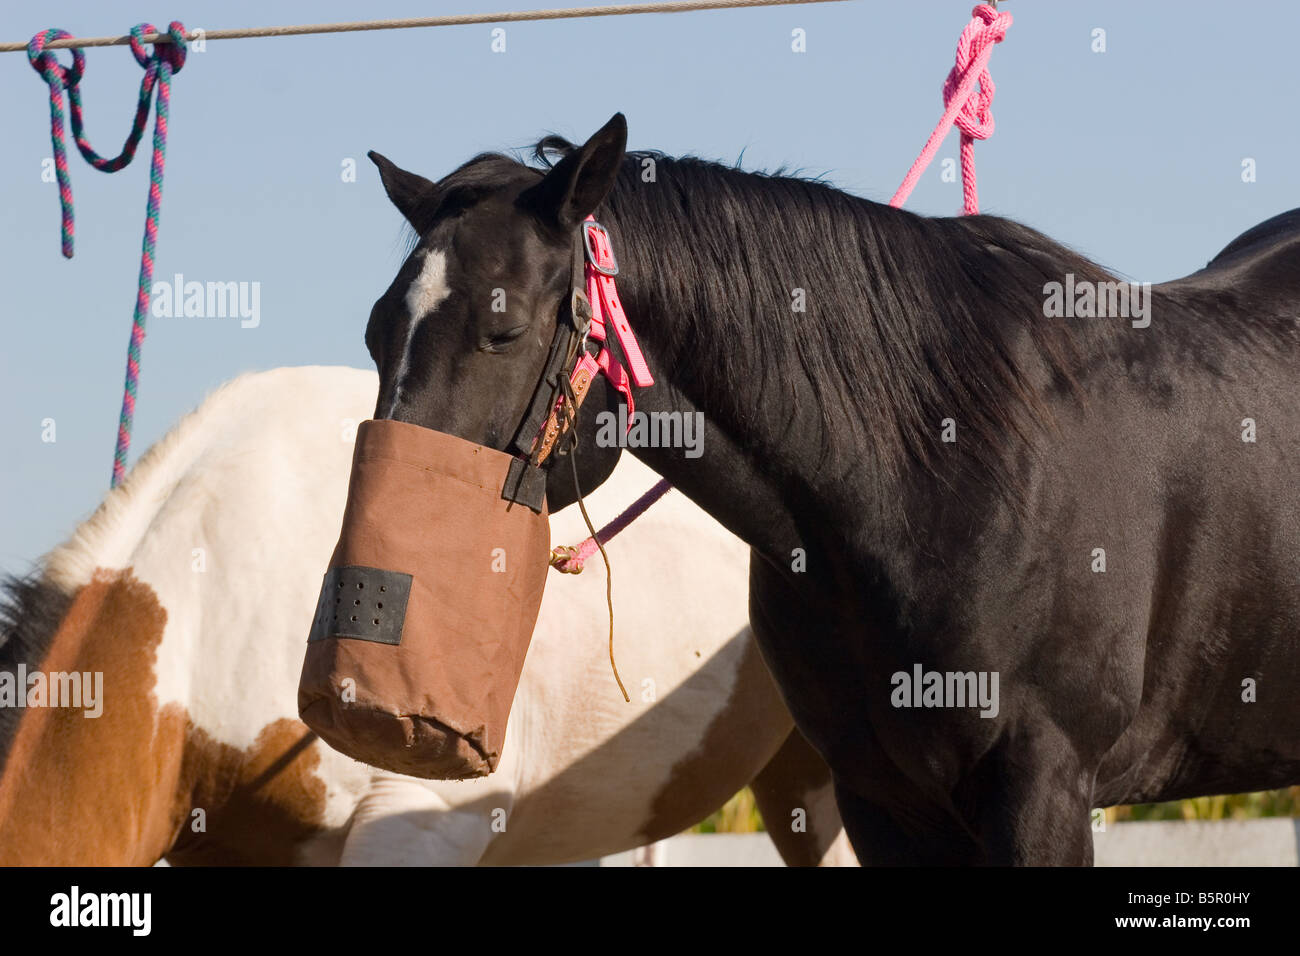 07512e3c8c Horse eating grain out of a nose bag on a picket line - Stock Image